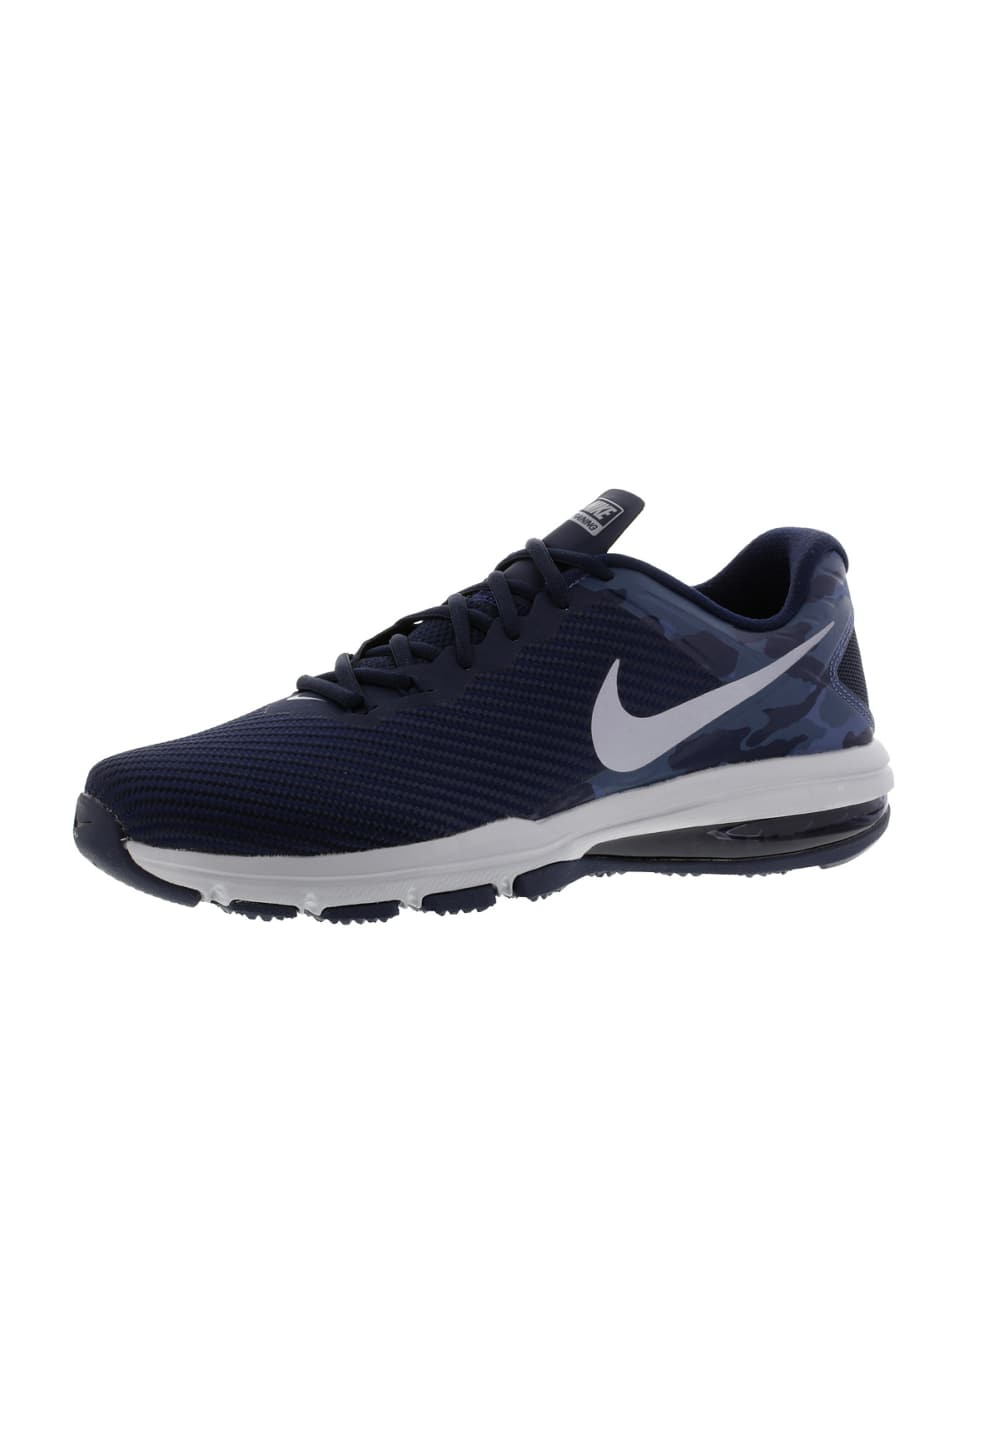 Nike Air Max Full Ride Tr 1.5 - Running shoes for Men ... c863363d7